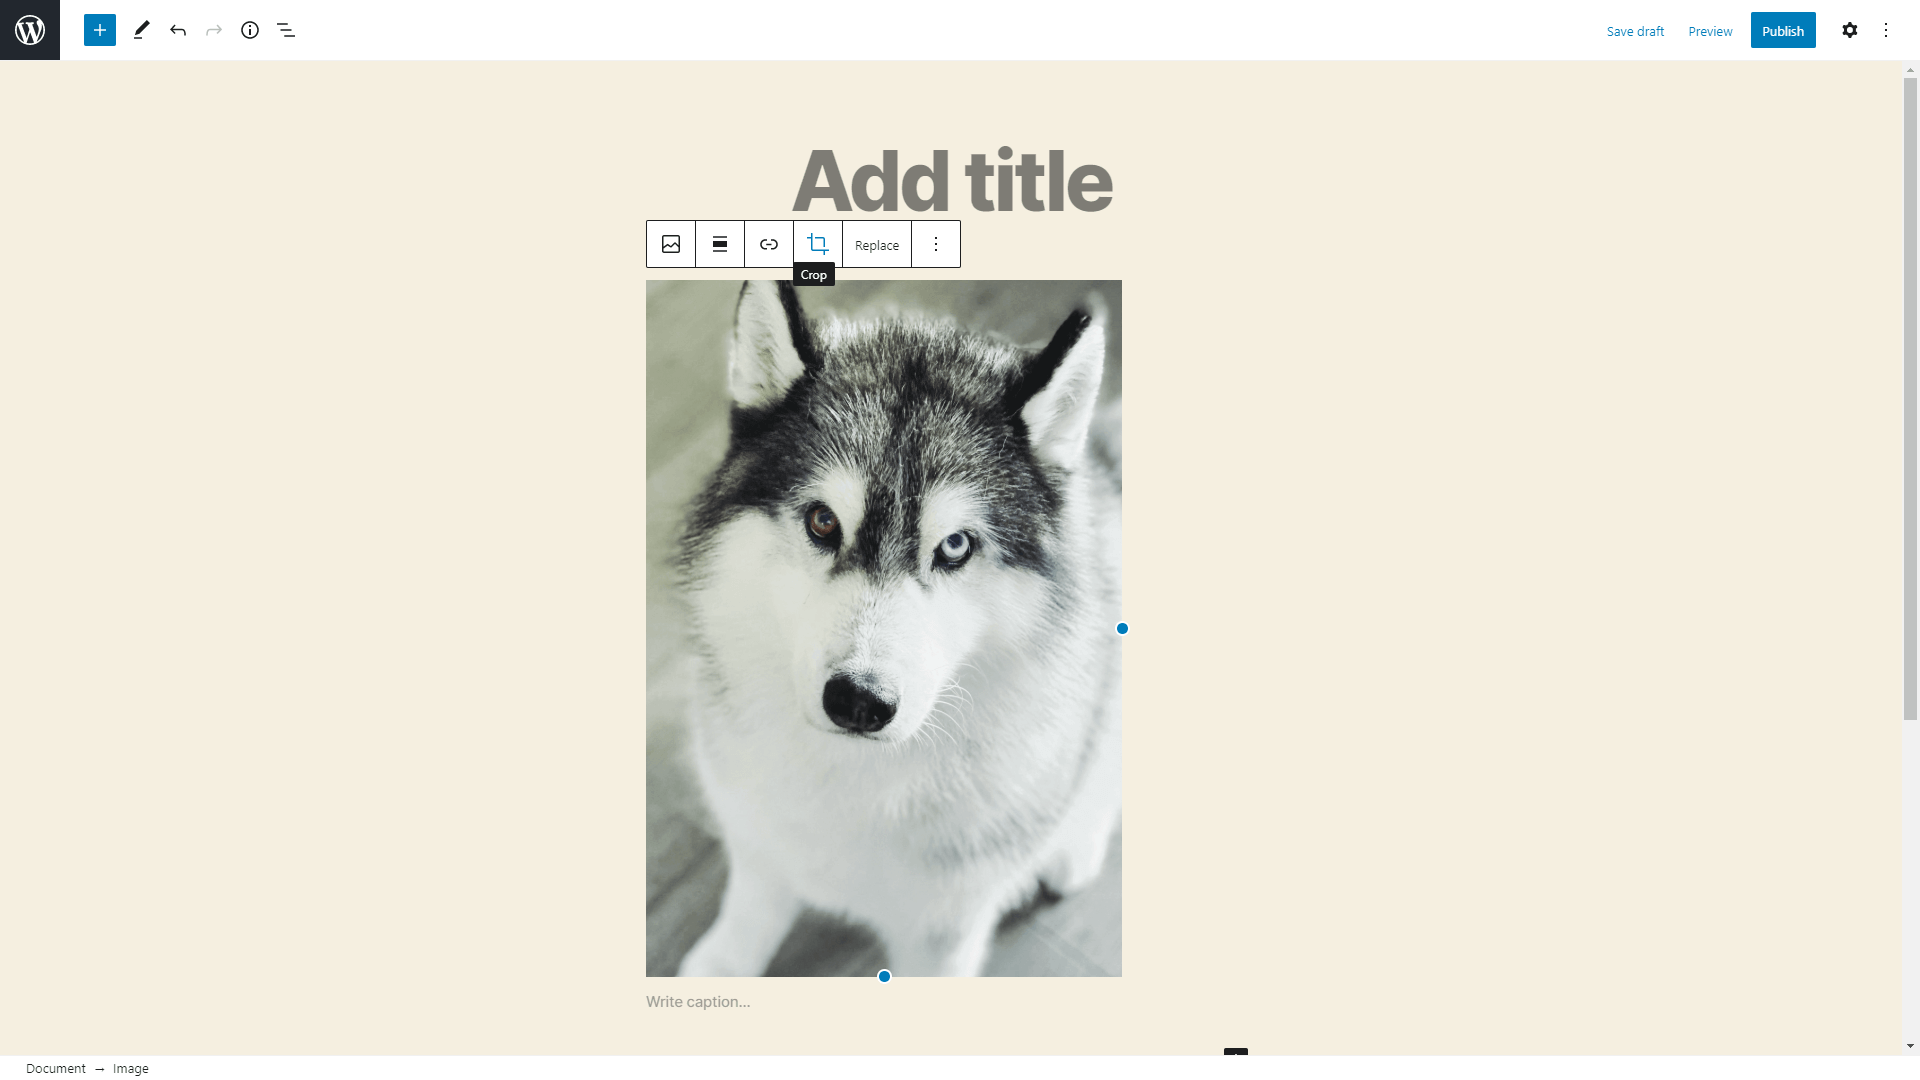 This upgrade allows you to crop, rotate, and zoom your images within the image block.